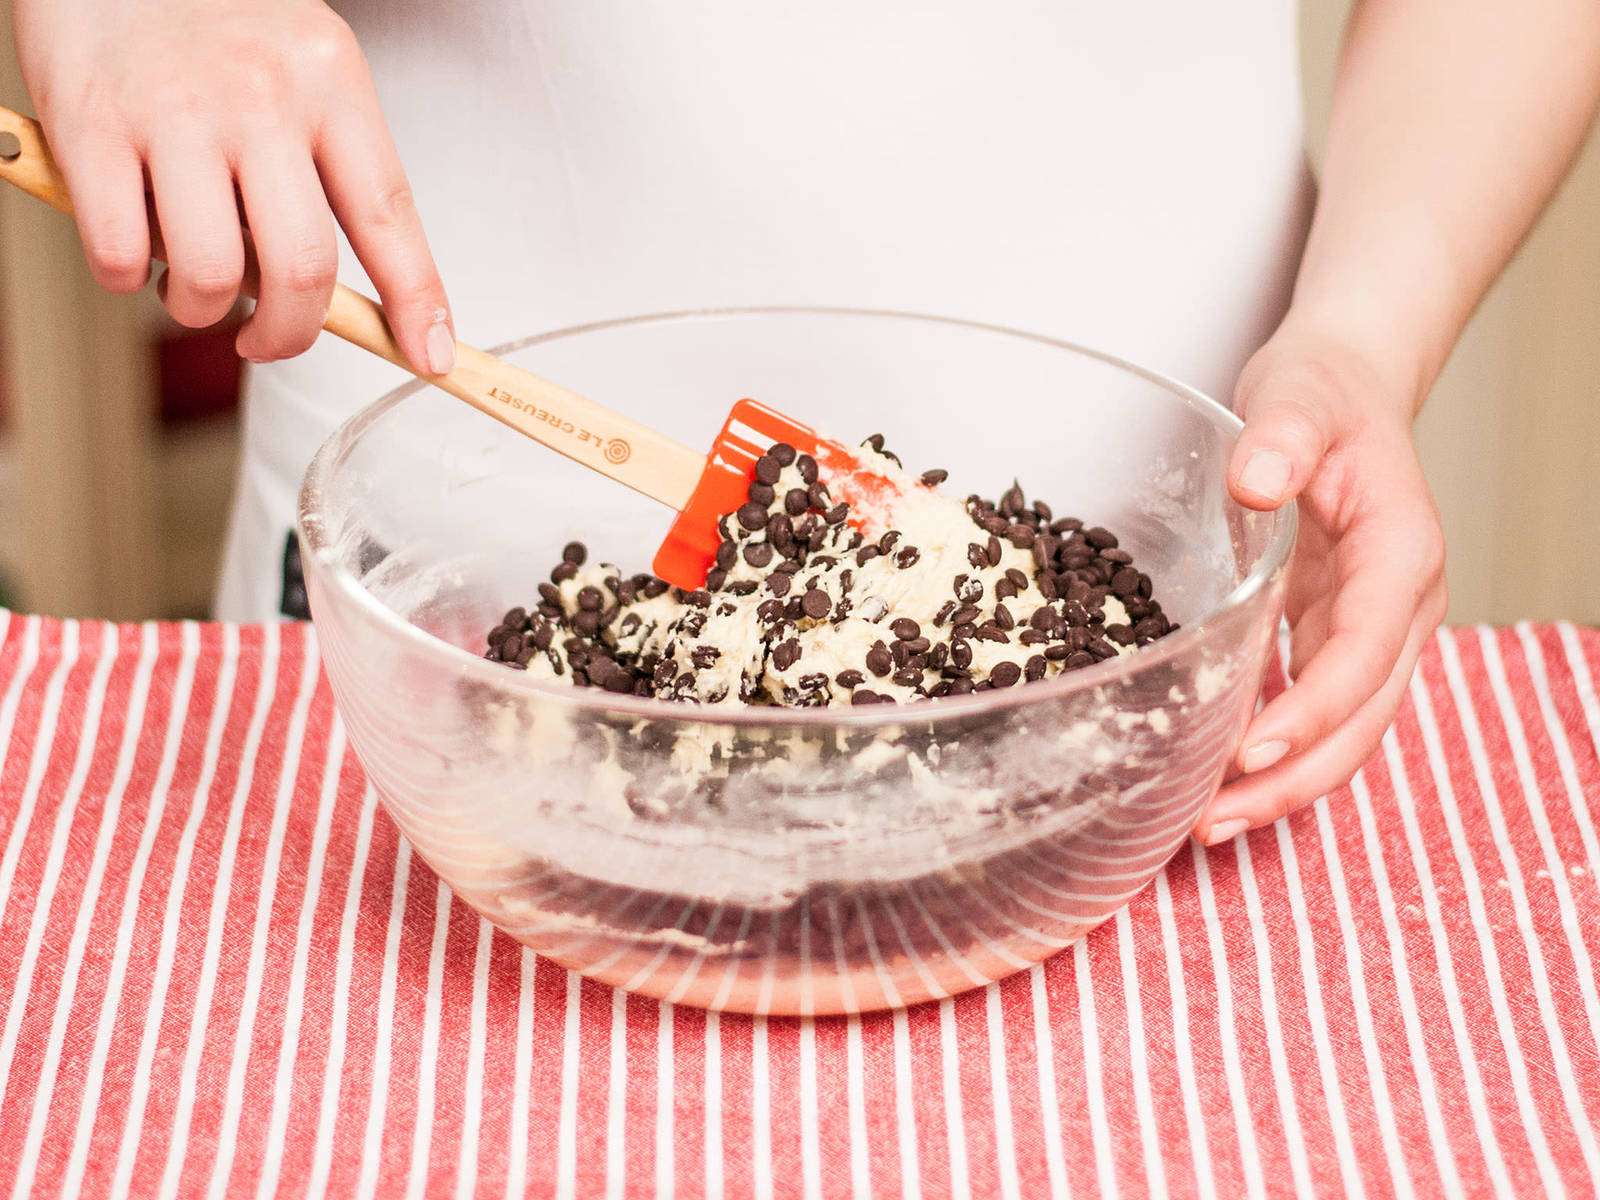 Add flour mixture to the butter mixture. Whisk until combined, then fold in chocolate drops.